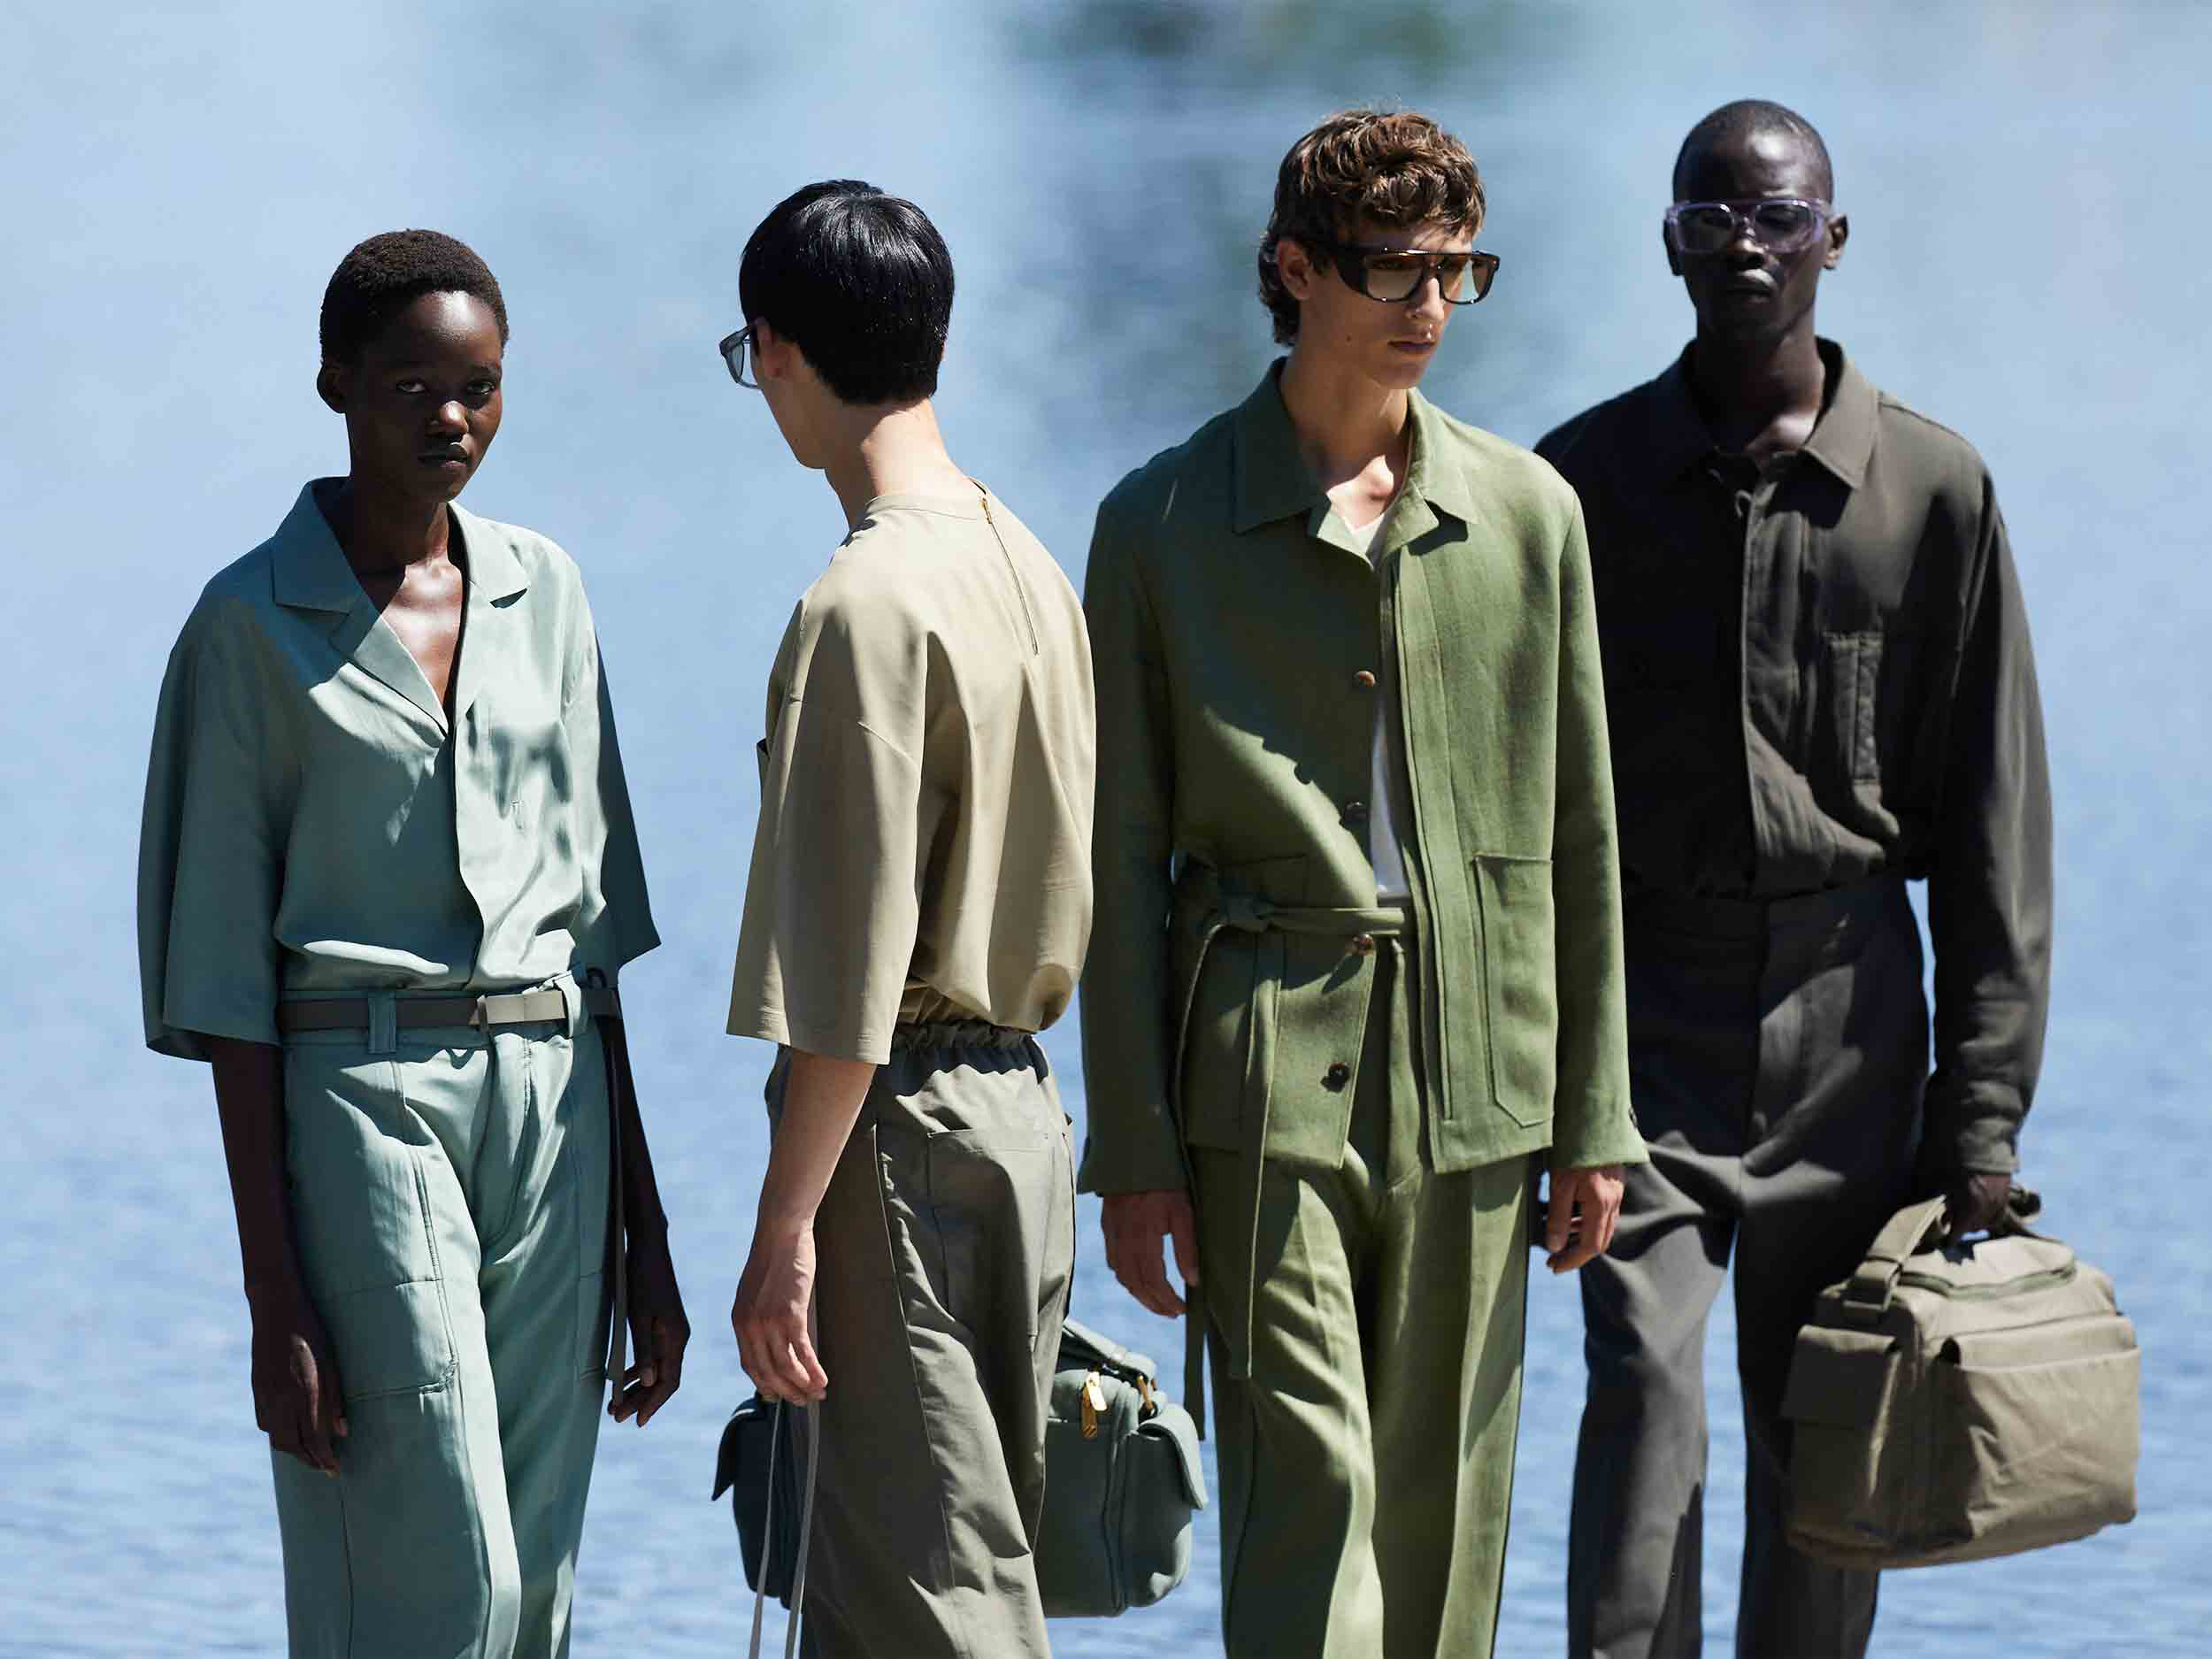 Zegna redefines timeless tailoring for a fast-changing world